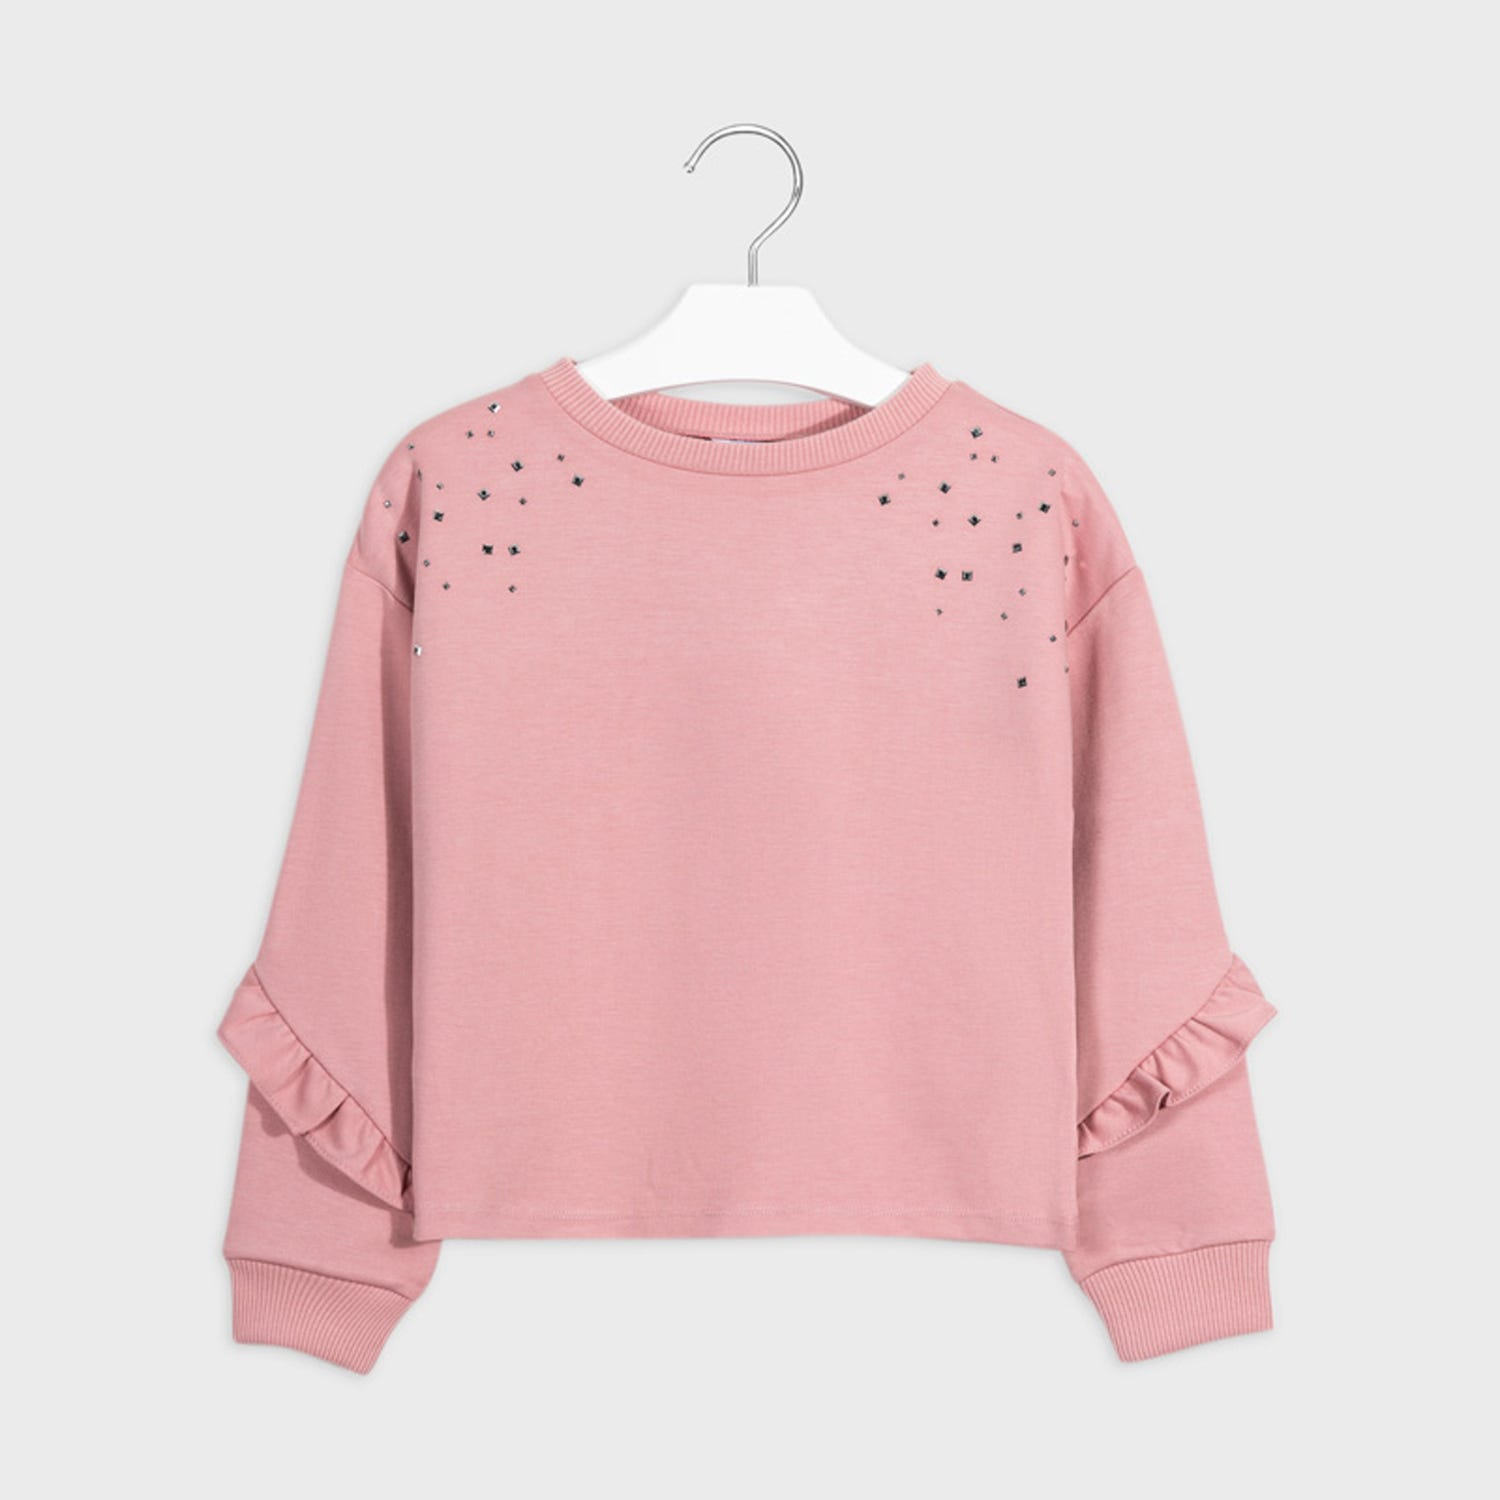 Mayoral Girls Pullover Blush Silver Studs Trim Size 8-18 ...